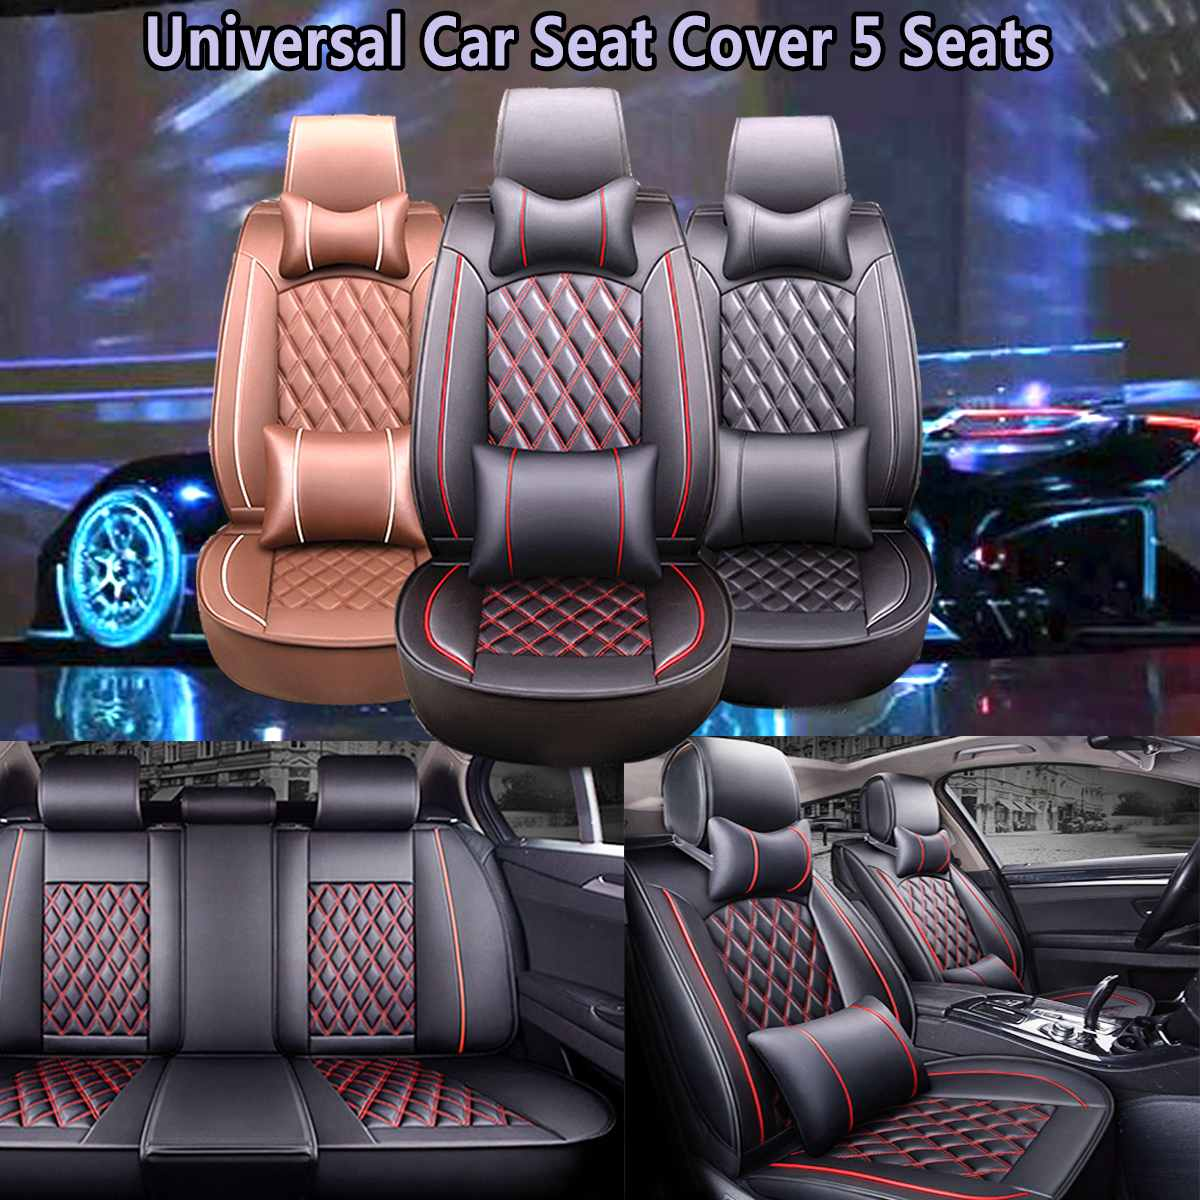 Universal Car 5 Seat Covers PU Leather Cotton Seat Cushion Protection Covers For Honda/VW/ToyotaUniversal Car 5 Seat Covers PU Leather Cotton Seat Cushion Protection Covers For Honda/VW/Toyota